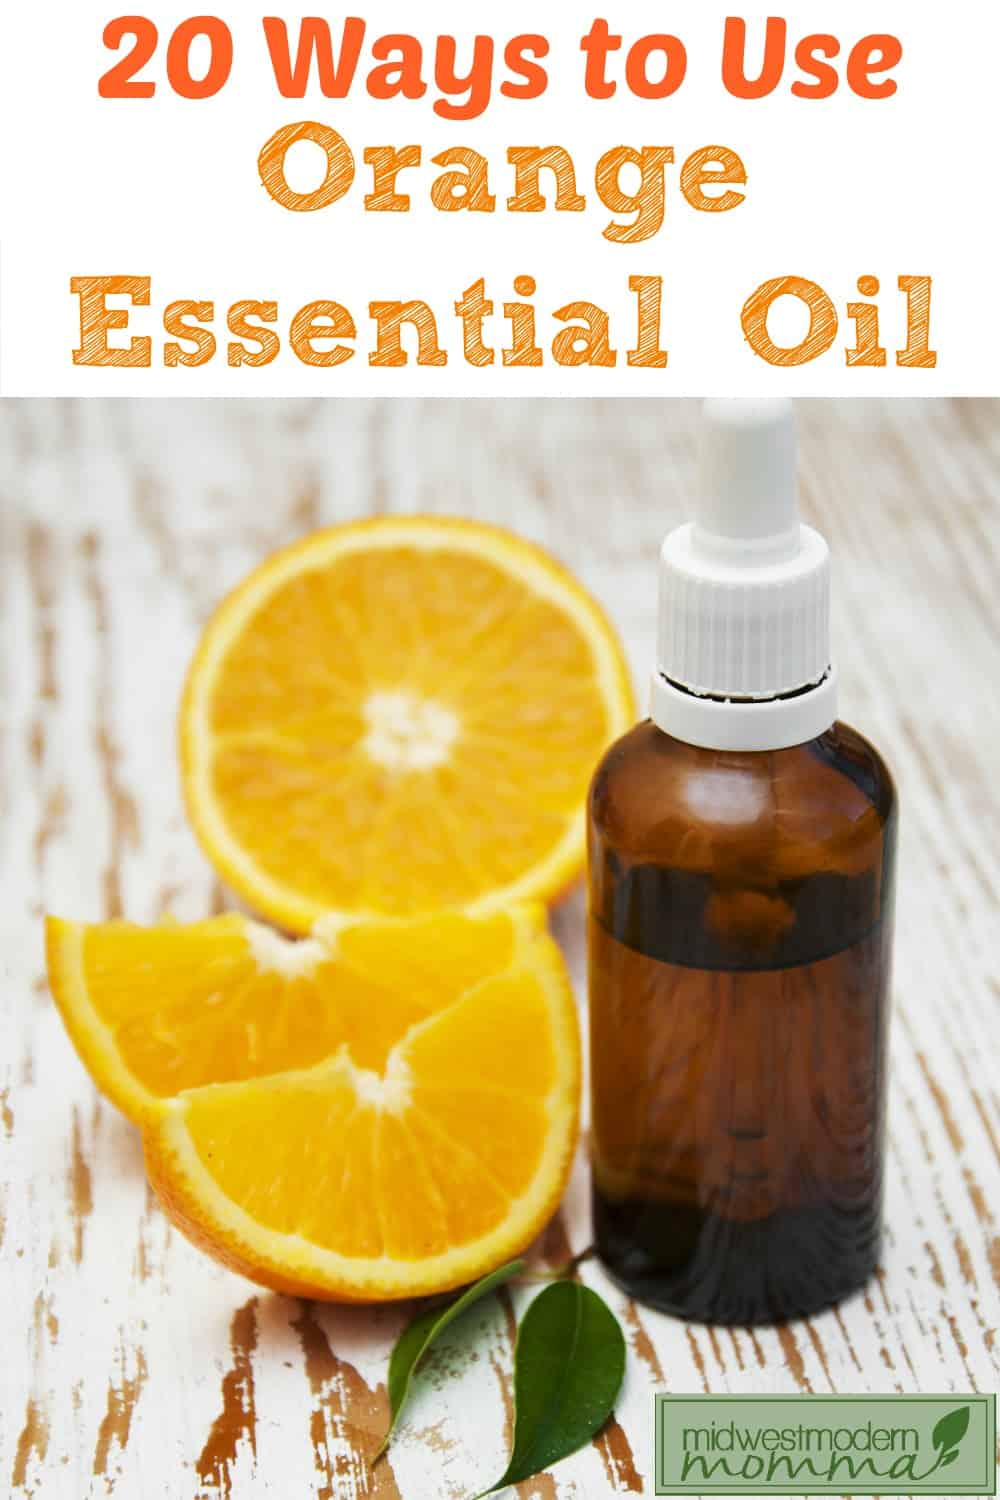 Don't miss our favorite Orange Essential Oils Uses!  Great options to make your life easier using an all natural substance instead of harsh chemicals!